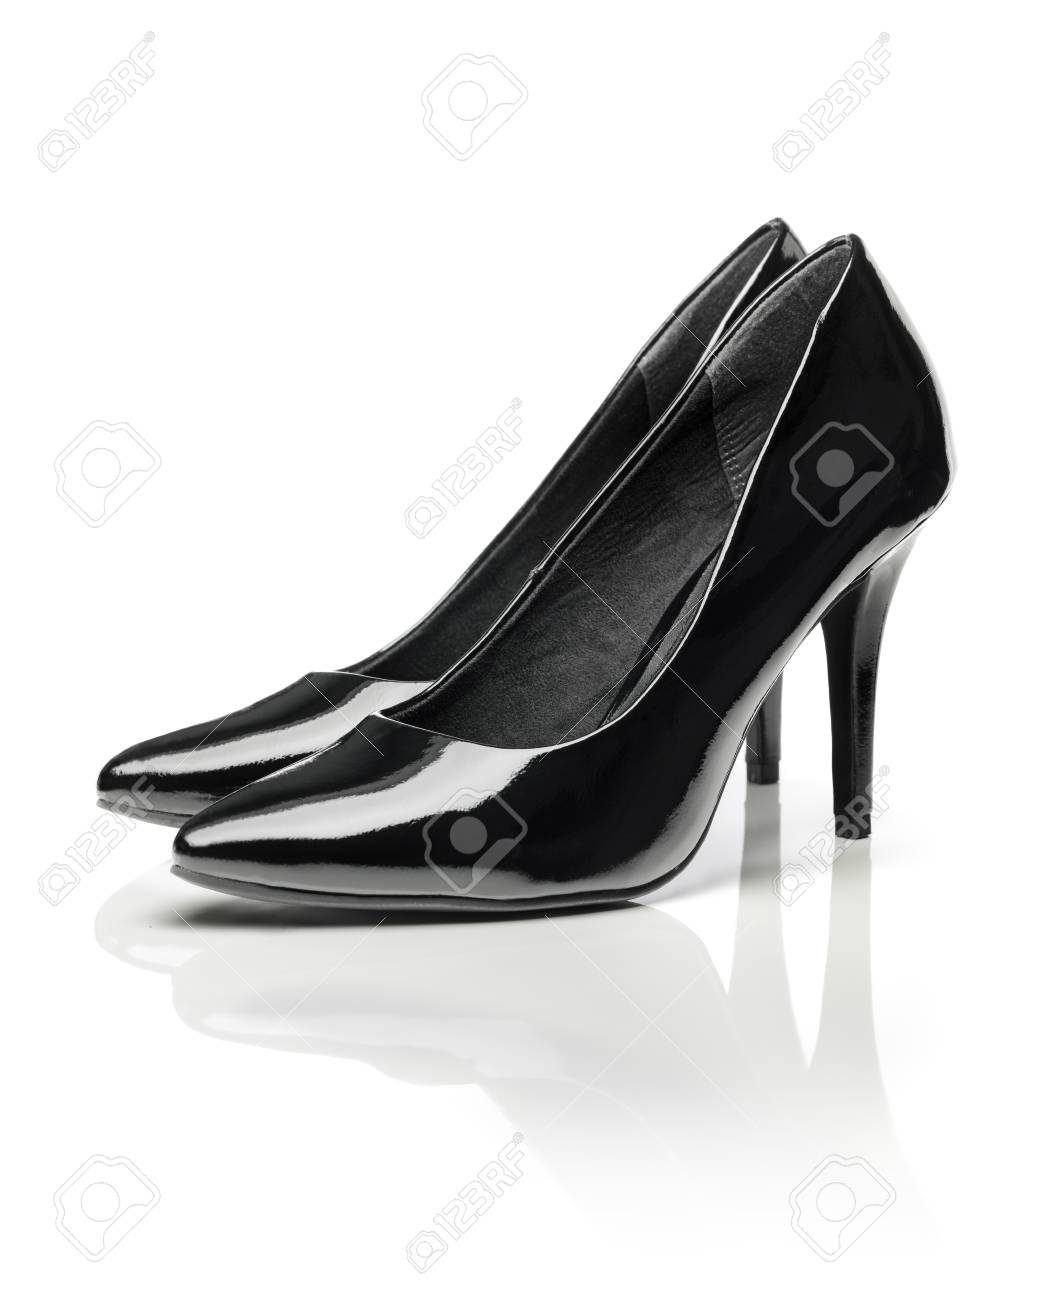 164e3646df Black shiny patent leather stiletto heel pumps isolated on white with  natural reflection. Stock Photo